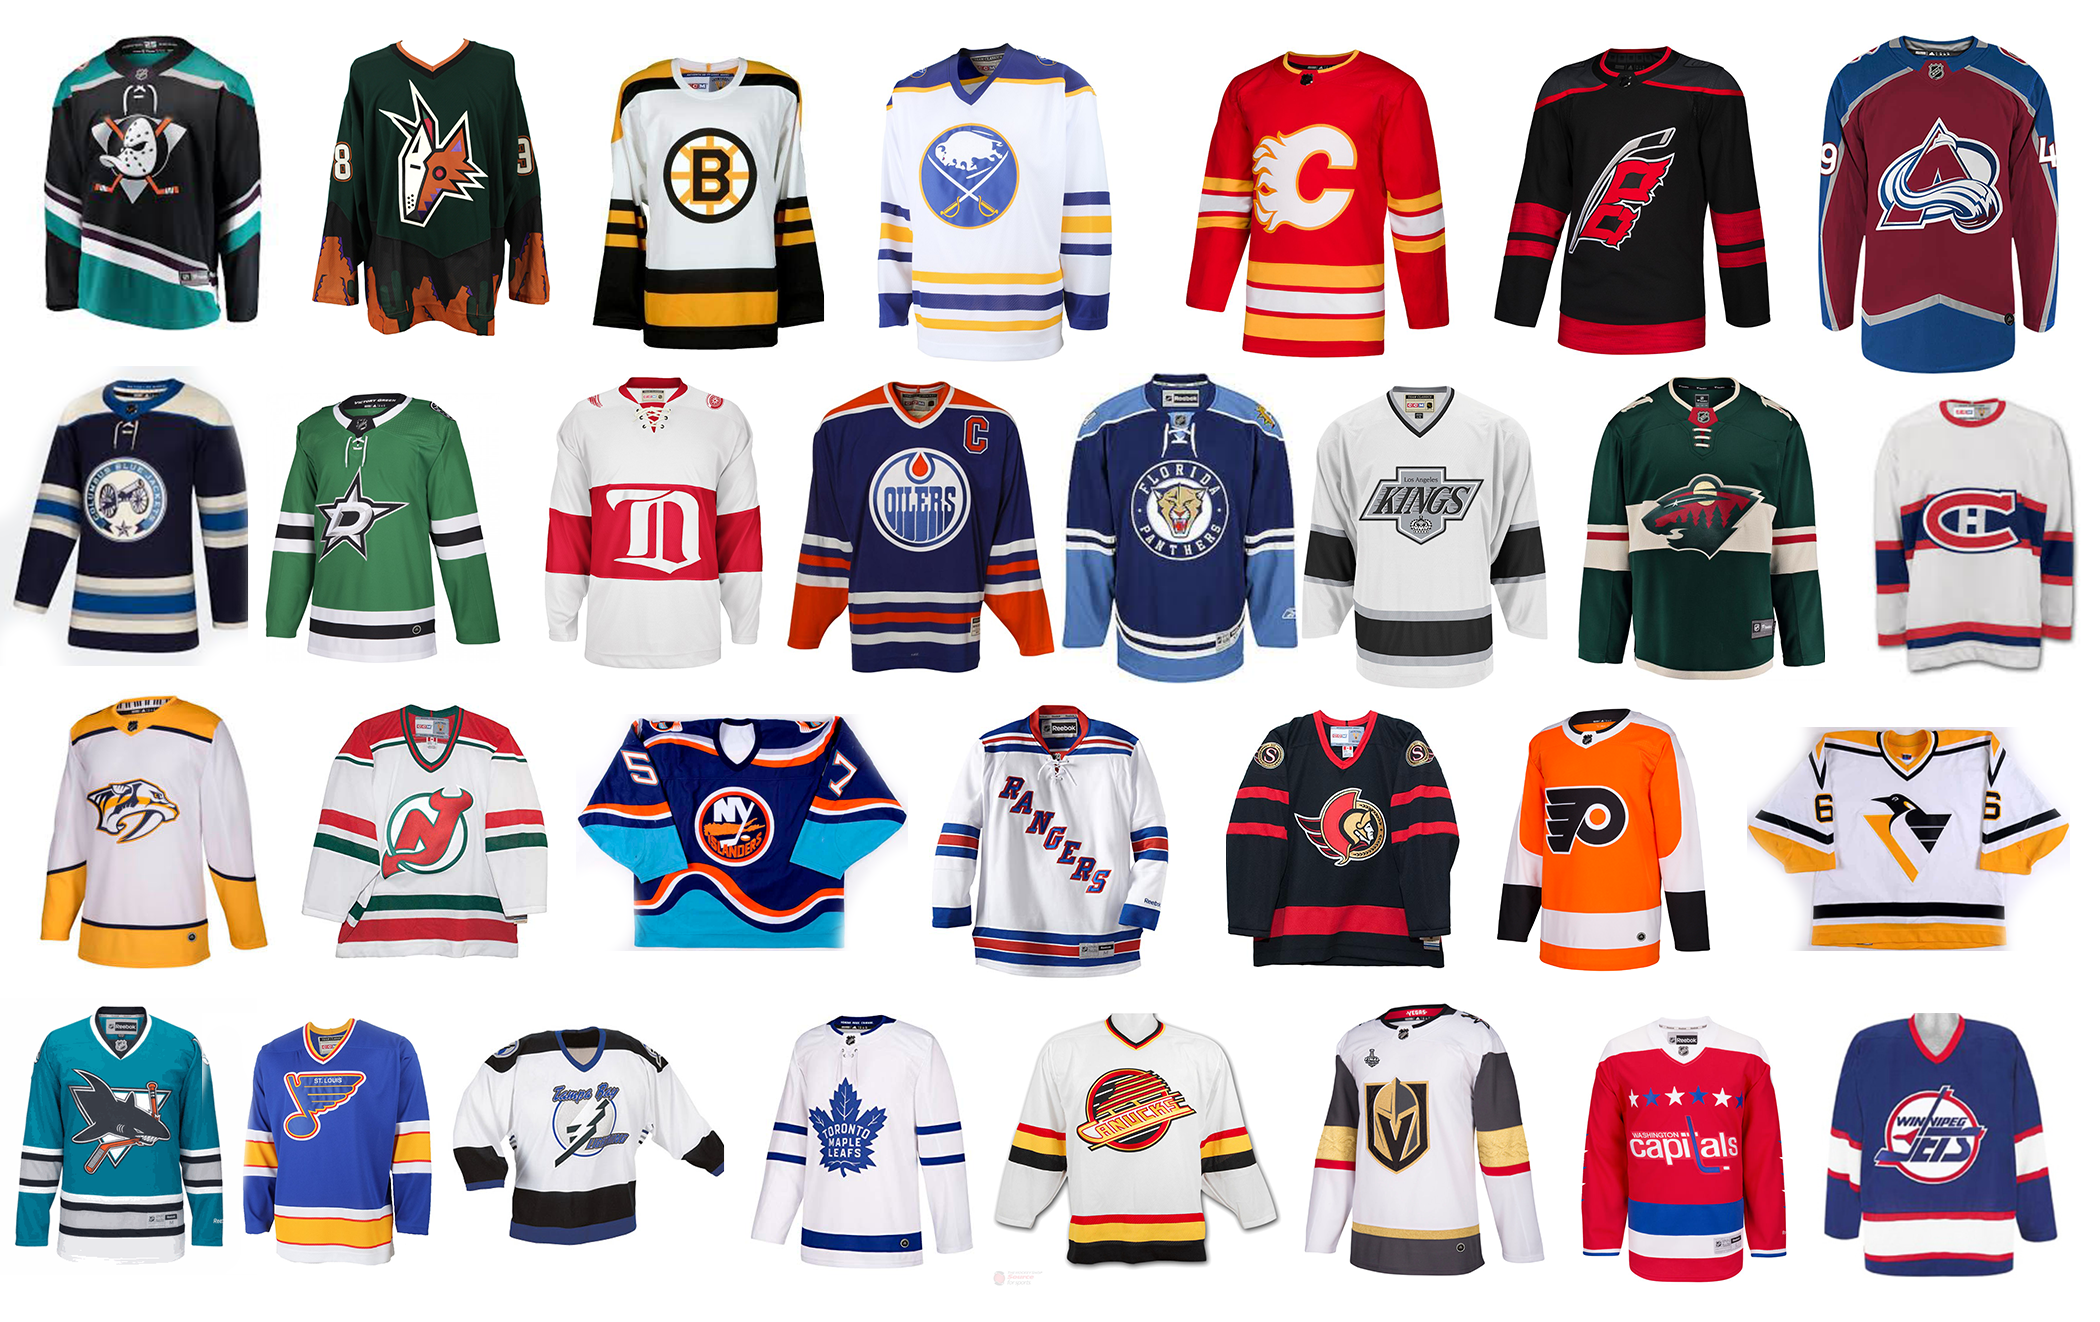 354b6fe60f5 Beyond Home and Away  Fixing The NHL's Jerseys